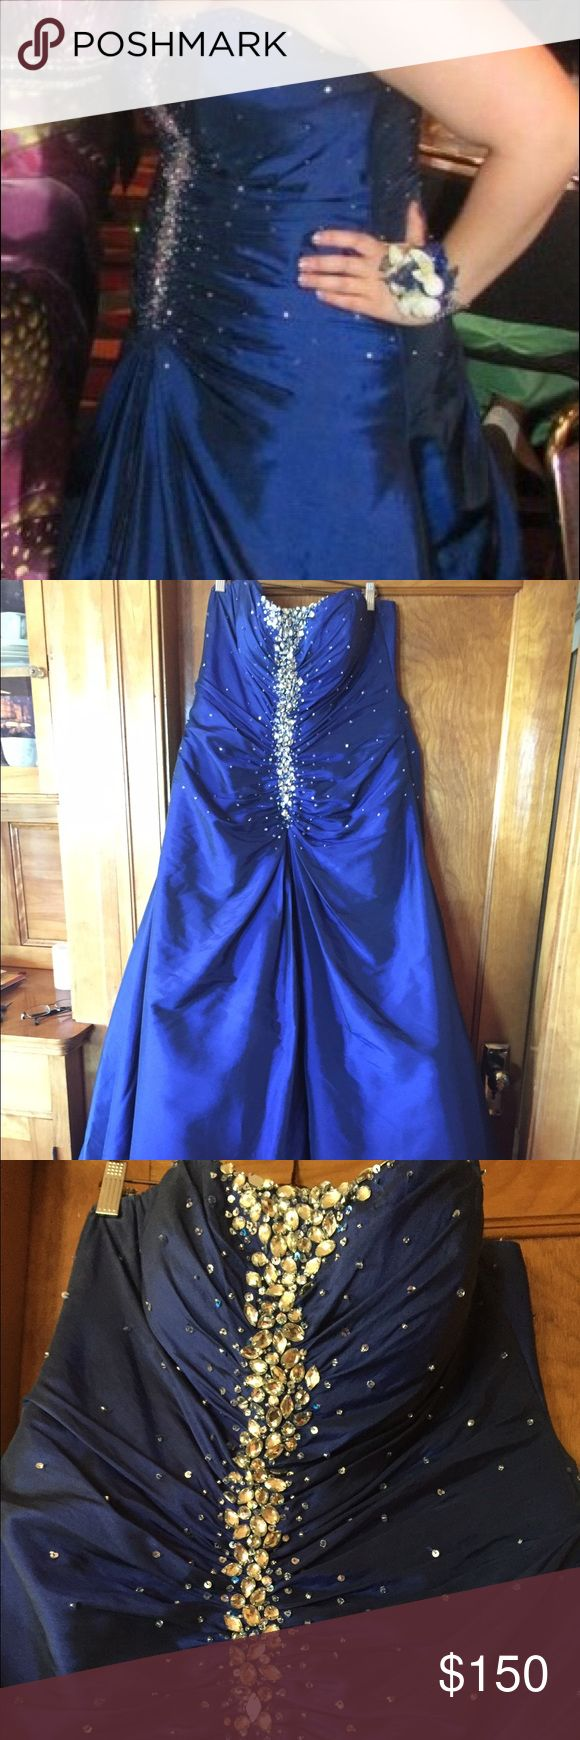 The dress for sale -  Beautiful Plus Size Mermaid Prom Dress Plus Size Strapless Mermaid Prom Dress For Sale